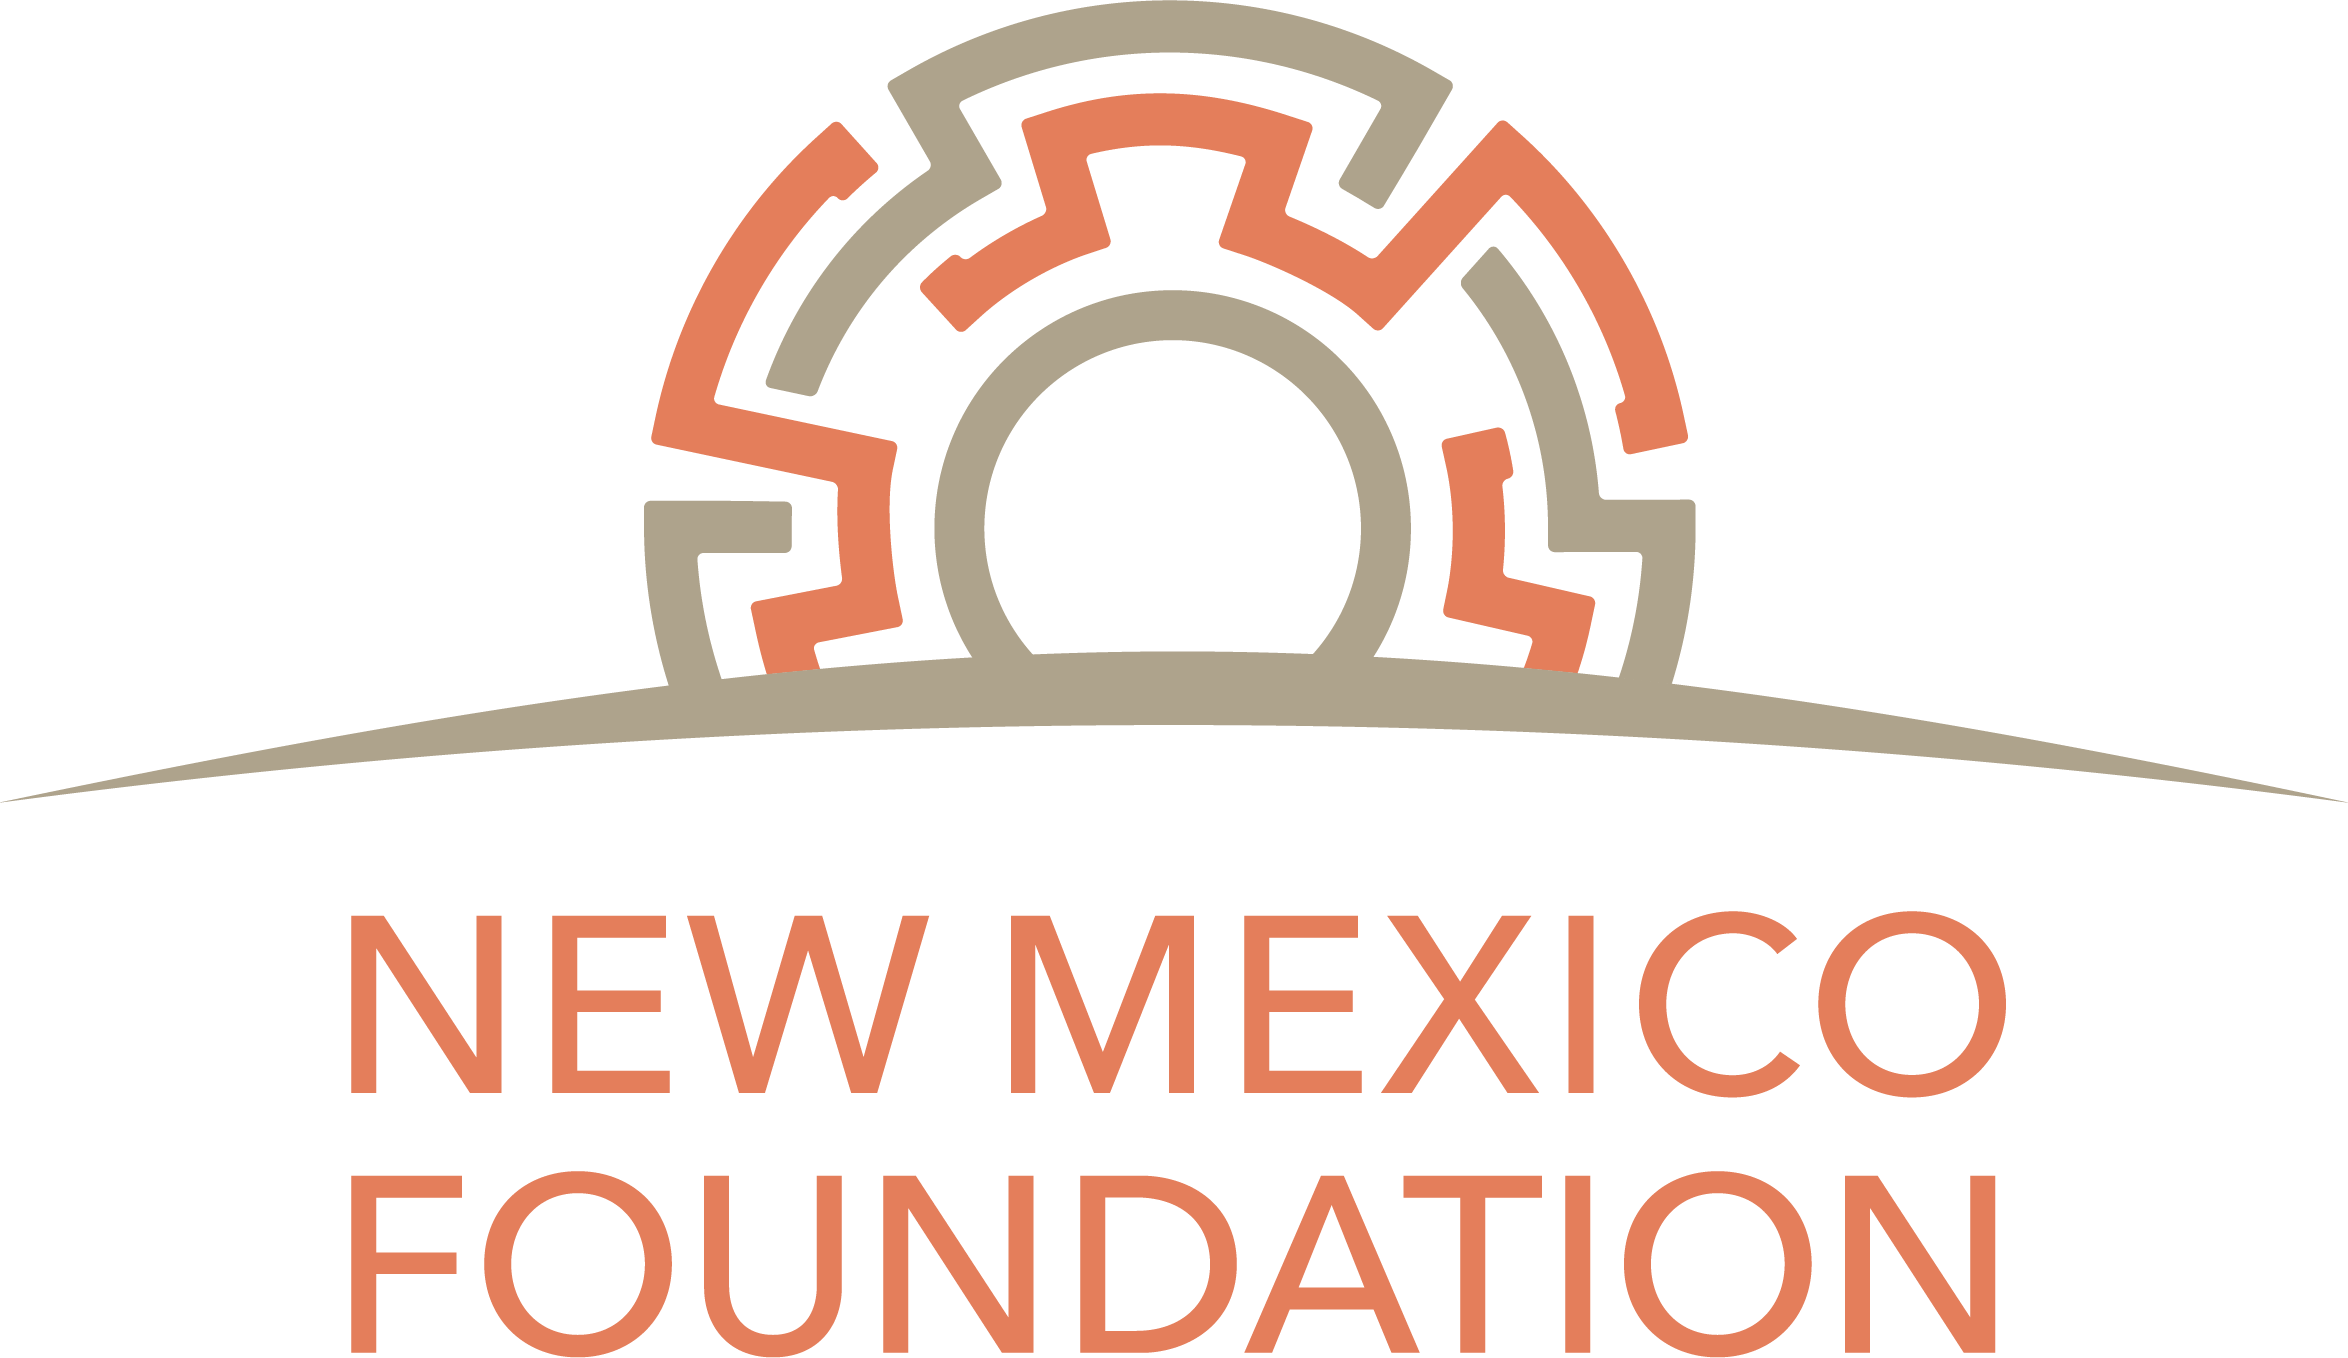 New Mexico Foundation